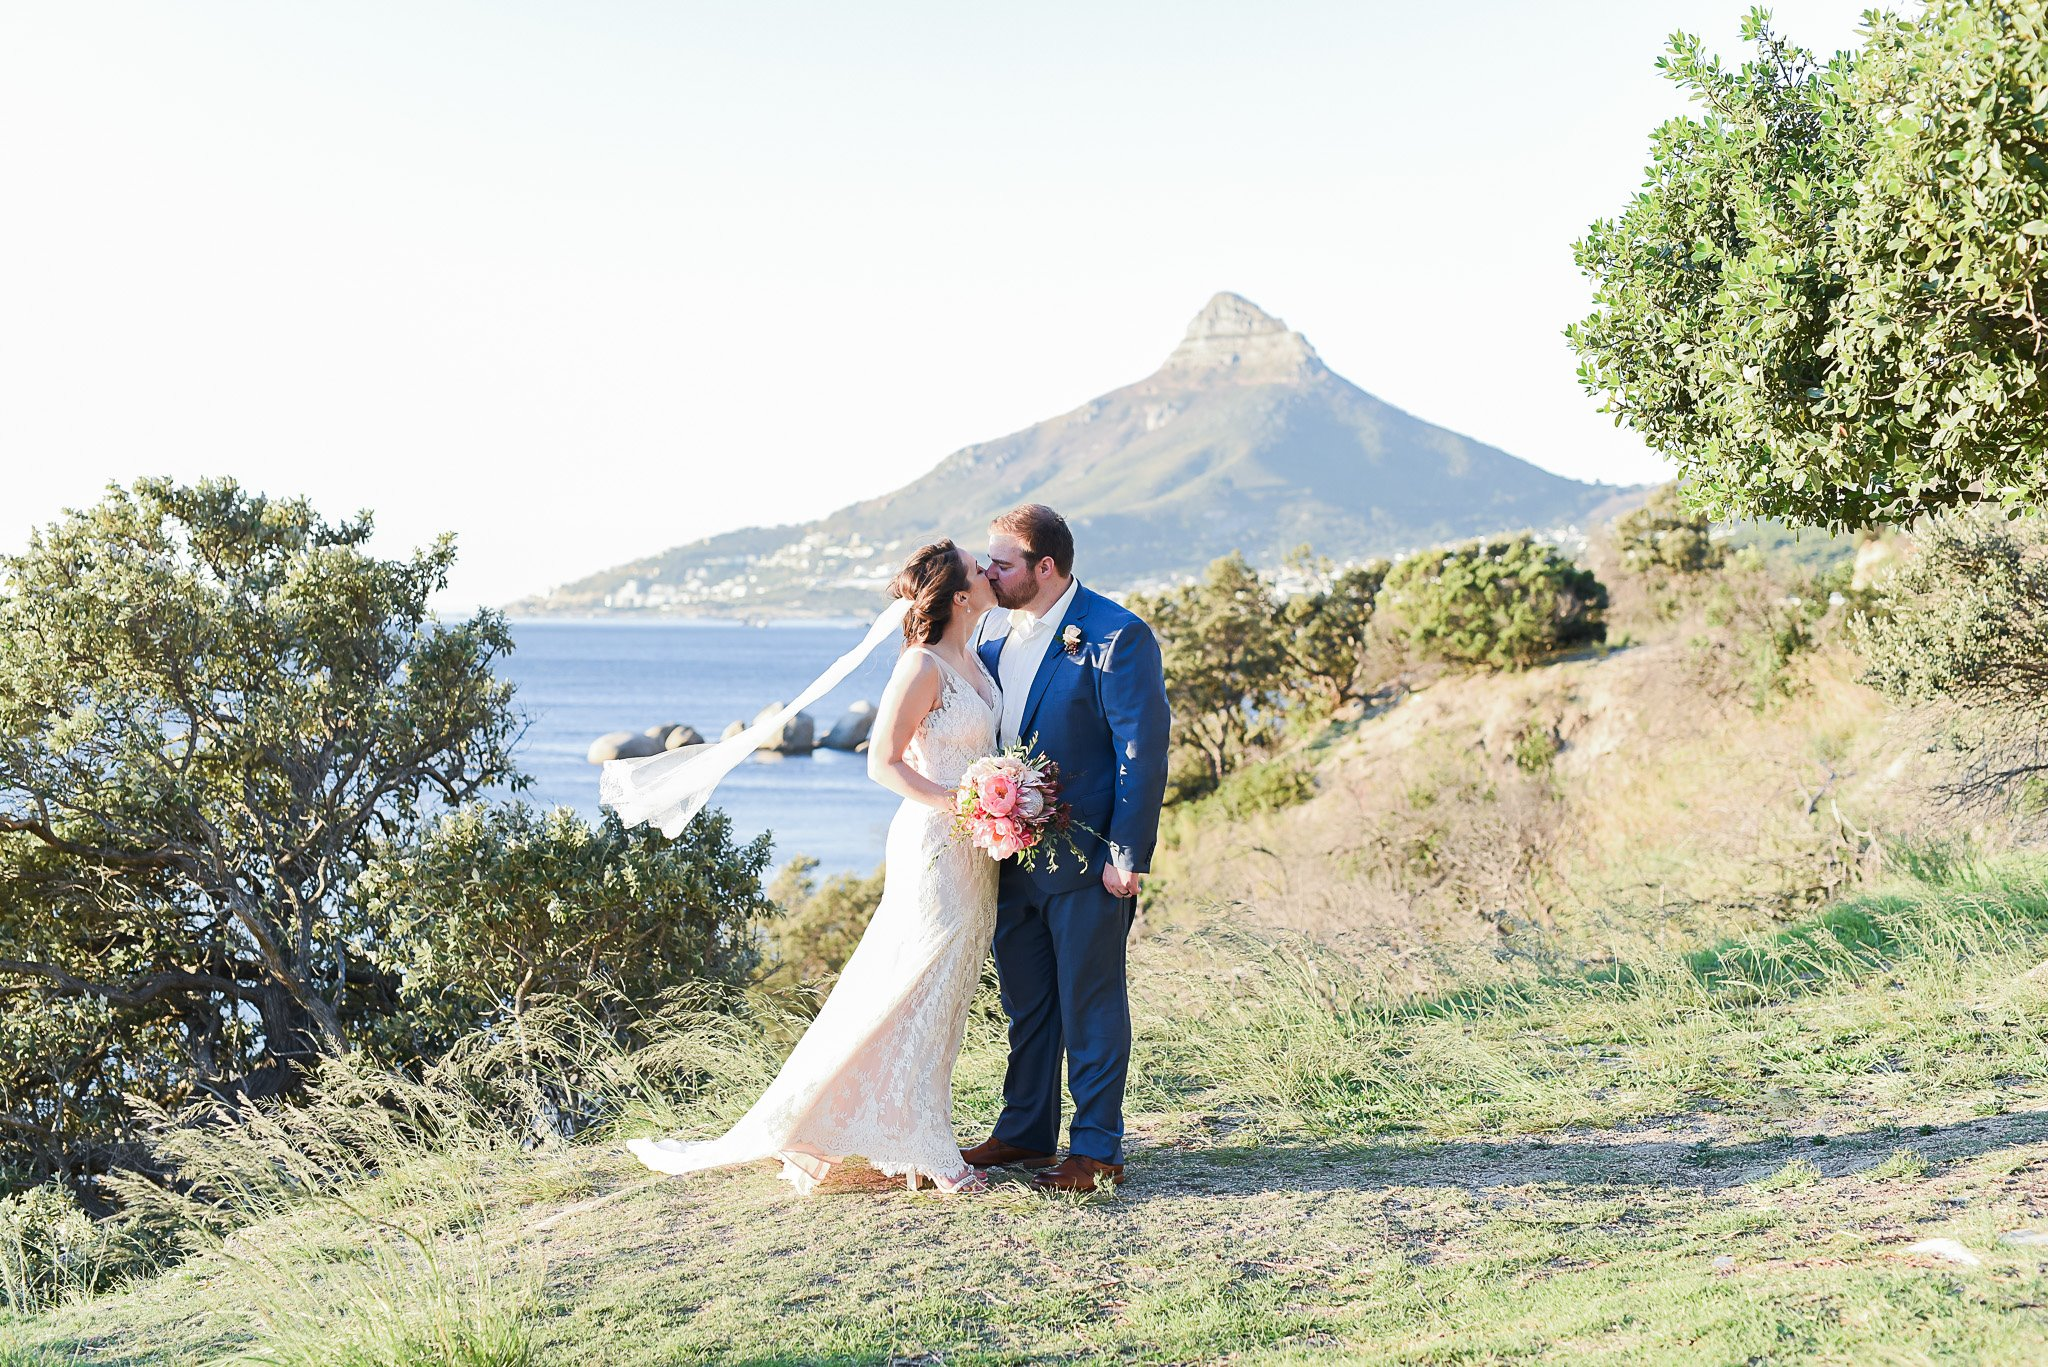 12 apostles hotel wedding cape town wedding florist